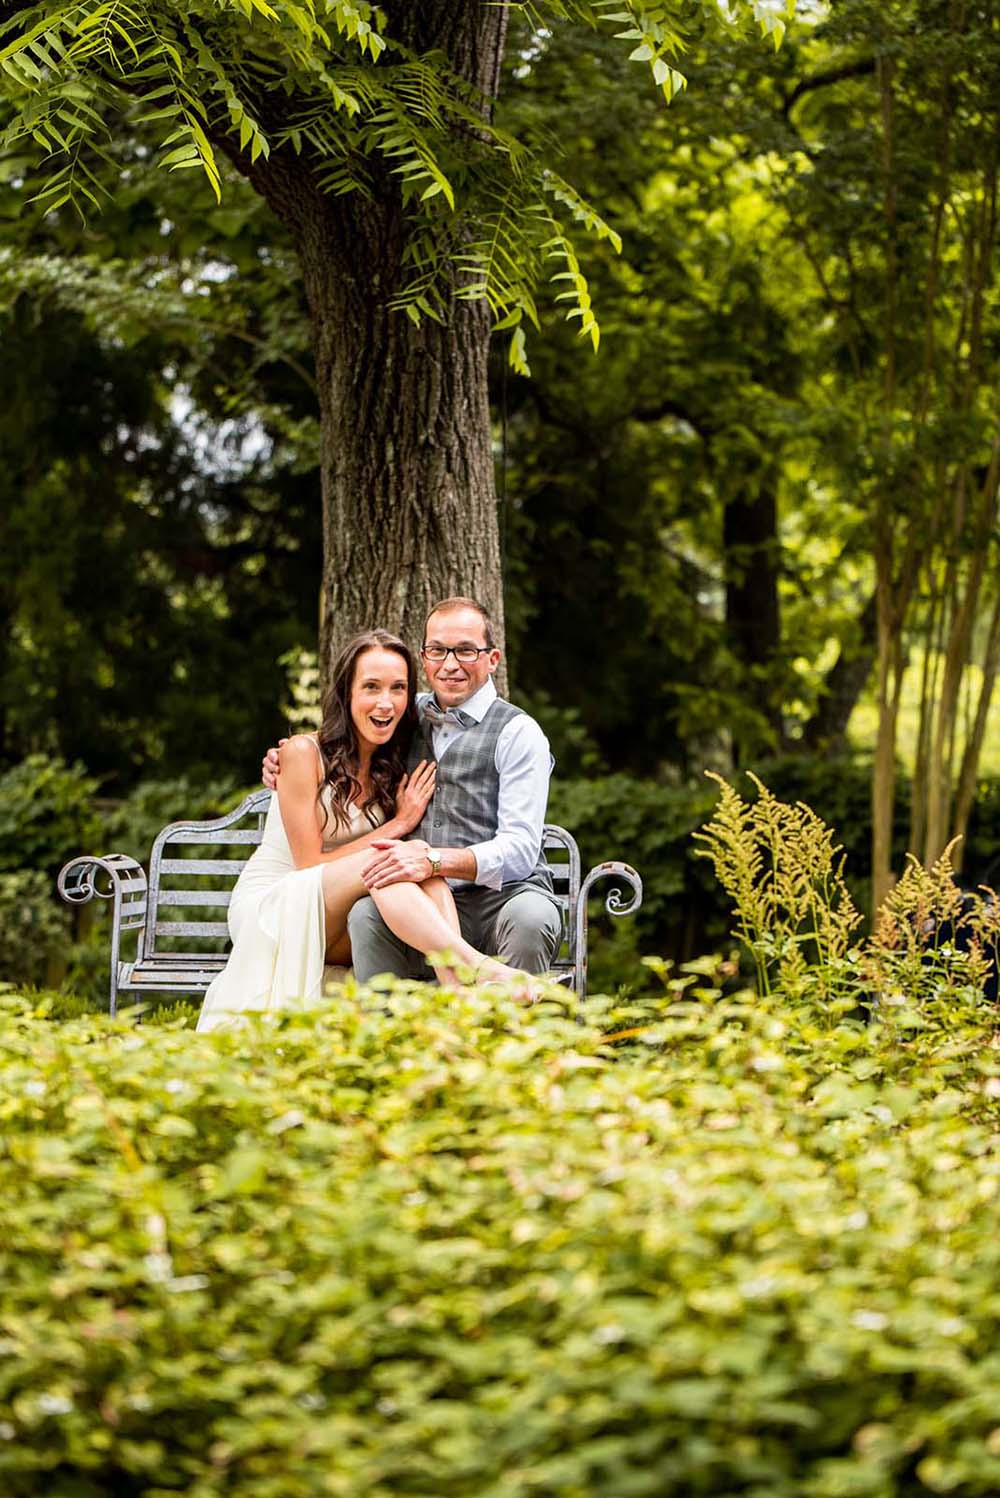 A wedding photoshoot in the gardens of the Inn on Montford. The couple is sitting on a garden bench, the bride is holding her legs on the groom's lap.